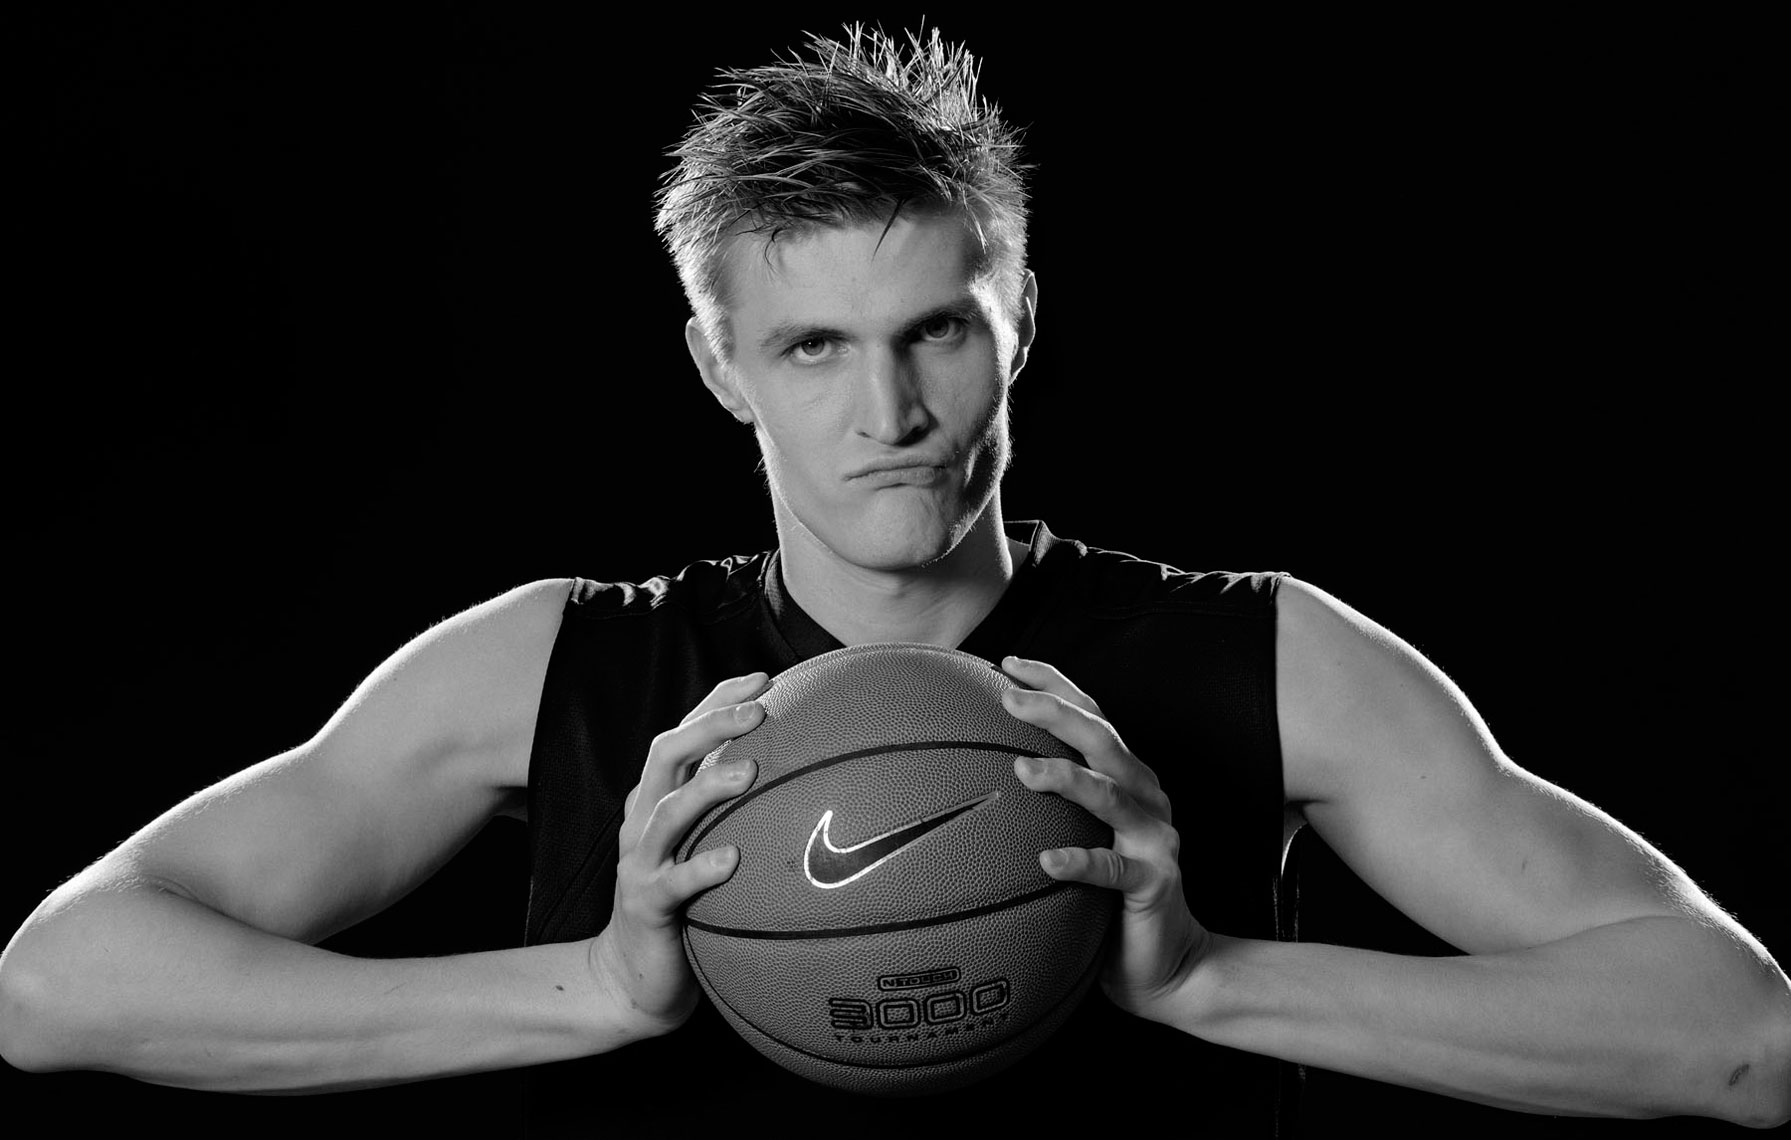 Nike advertising Andrei Kirilenko basketball photo by monte isom